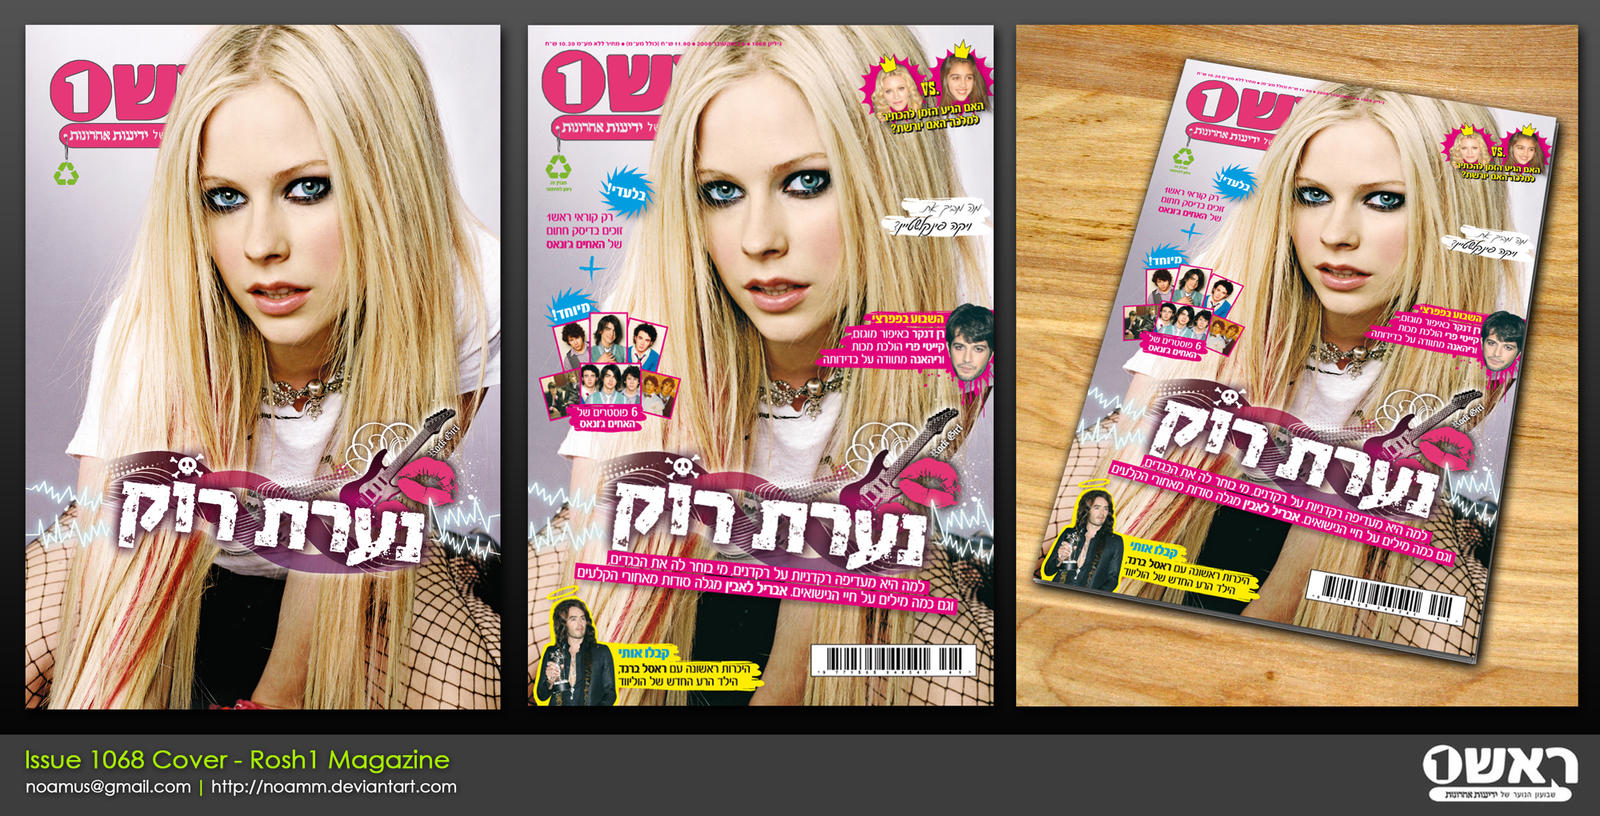 Cover - Rosh1 - Issue 1068 by NoamM